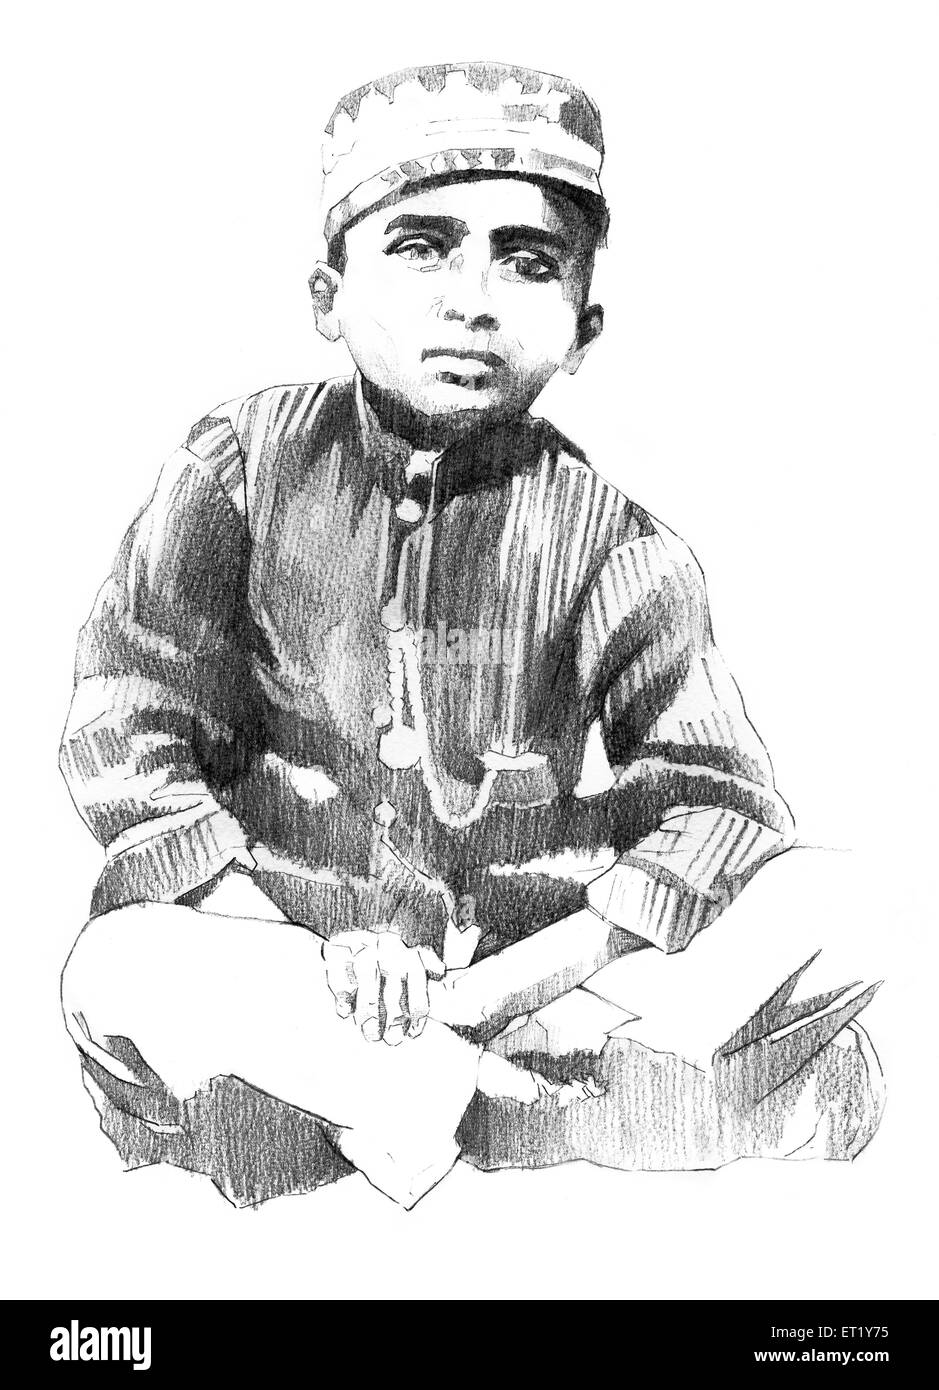 illustration of M F Hussain sketch India Asia - Stock Image